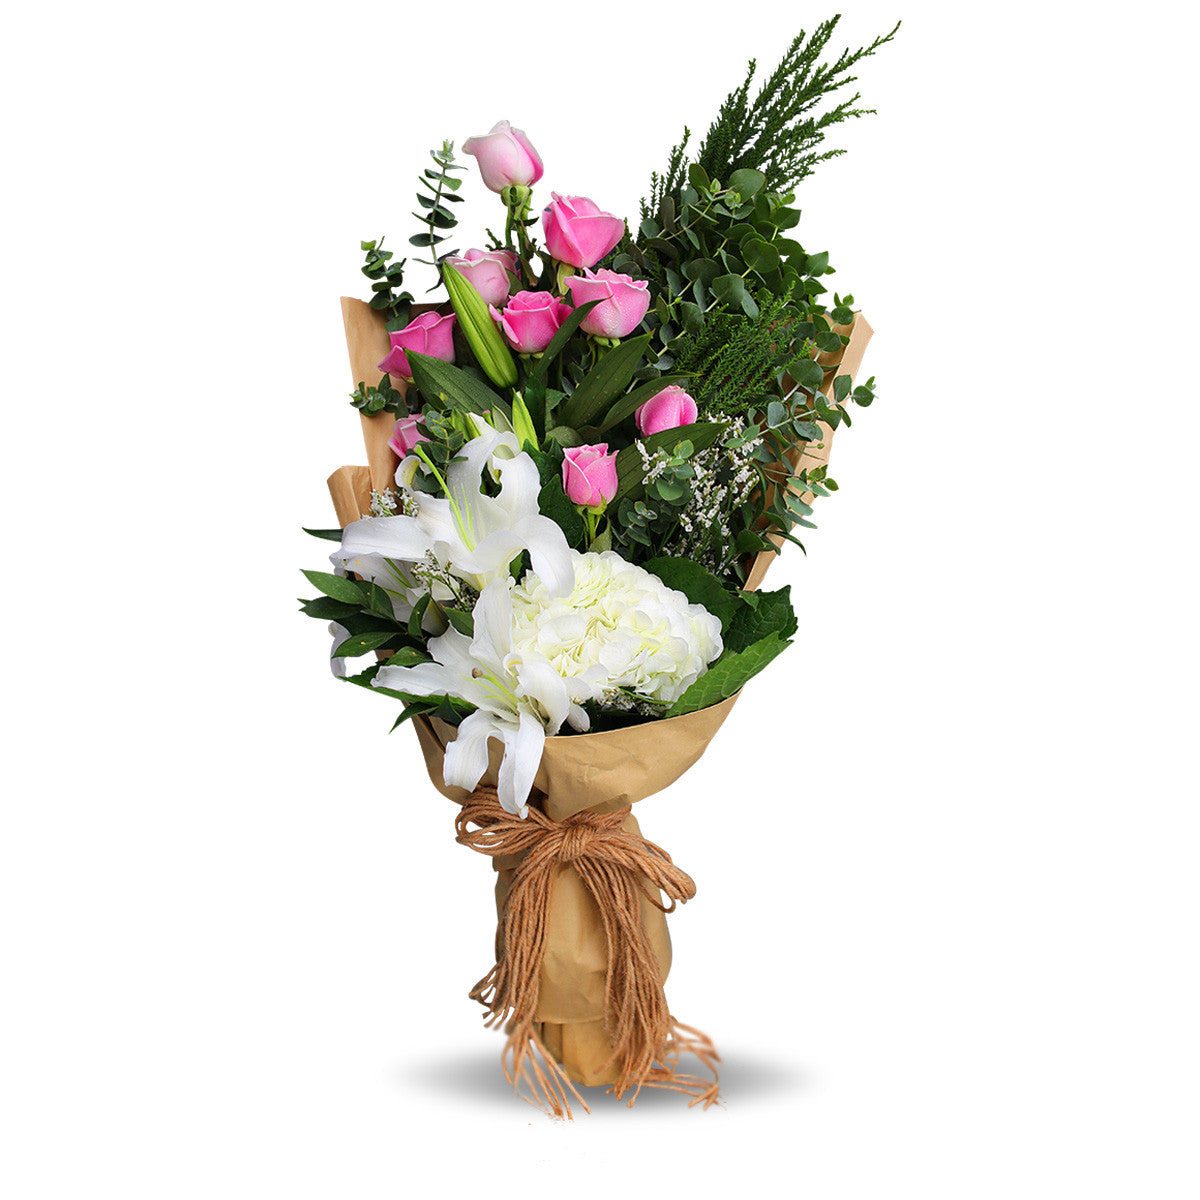 Gorgeous Bouquet Of Roses, Lilies And Decorative Leaves